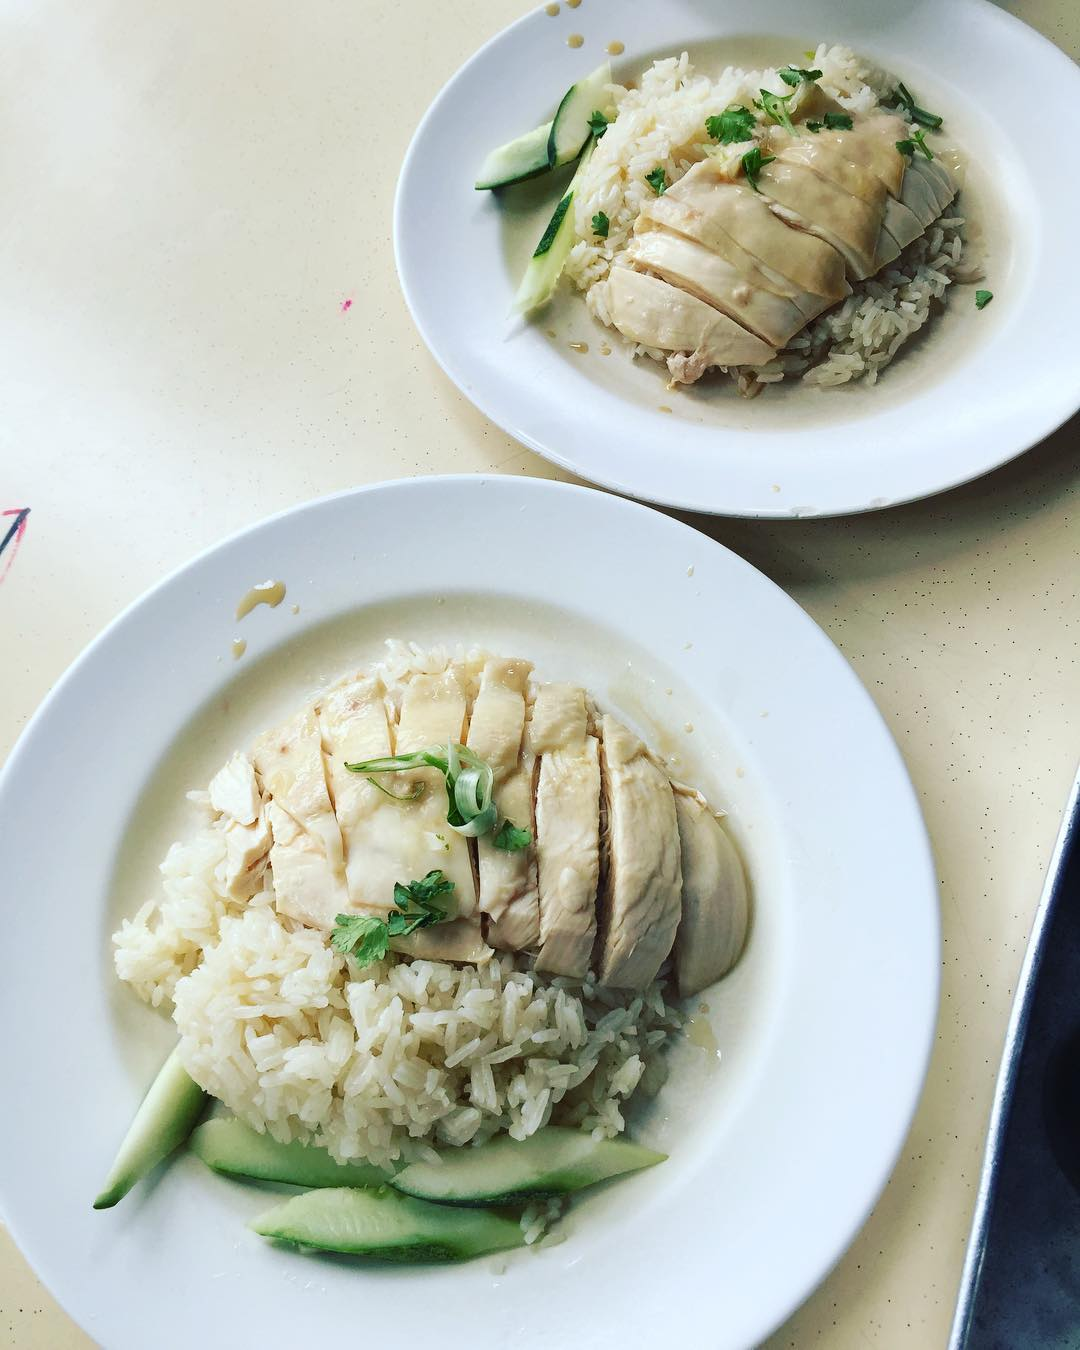 Changi Village Food Tiong Bahru Boneless Hainanese Chicken Rice